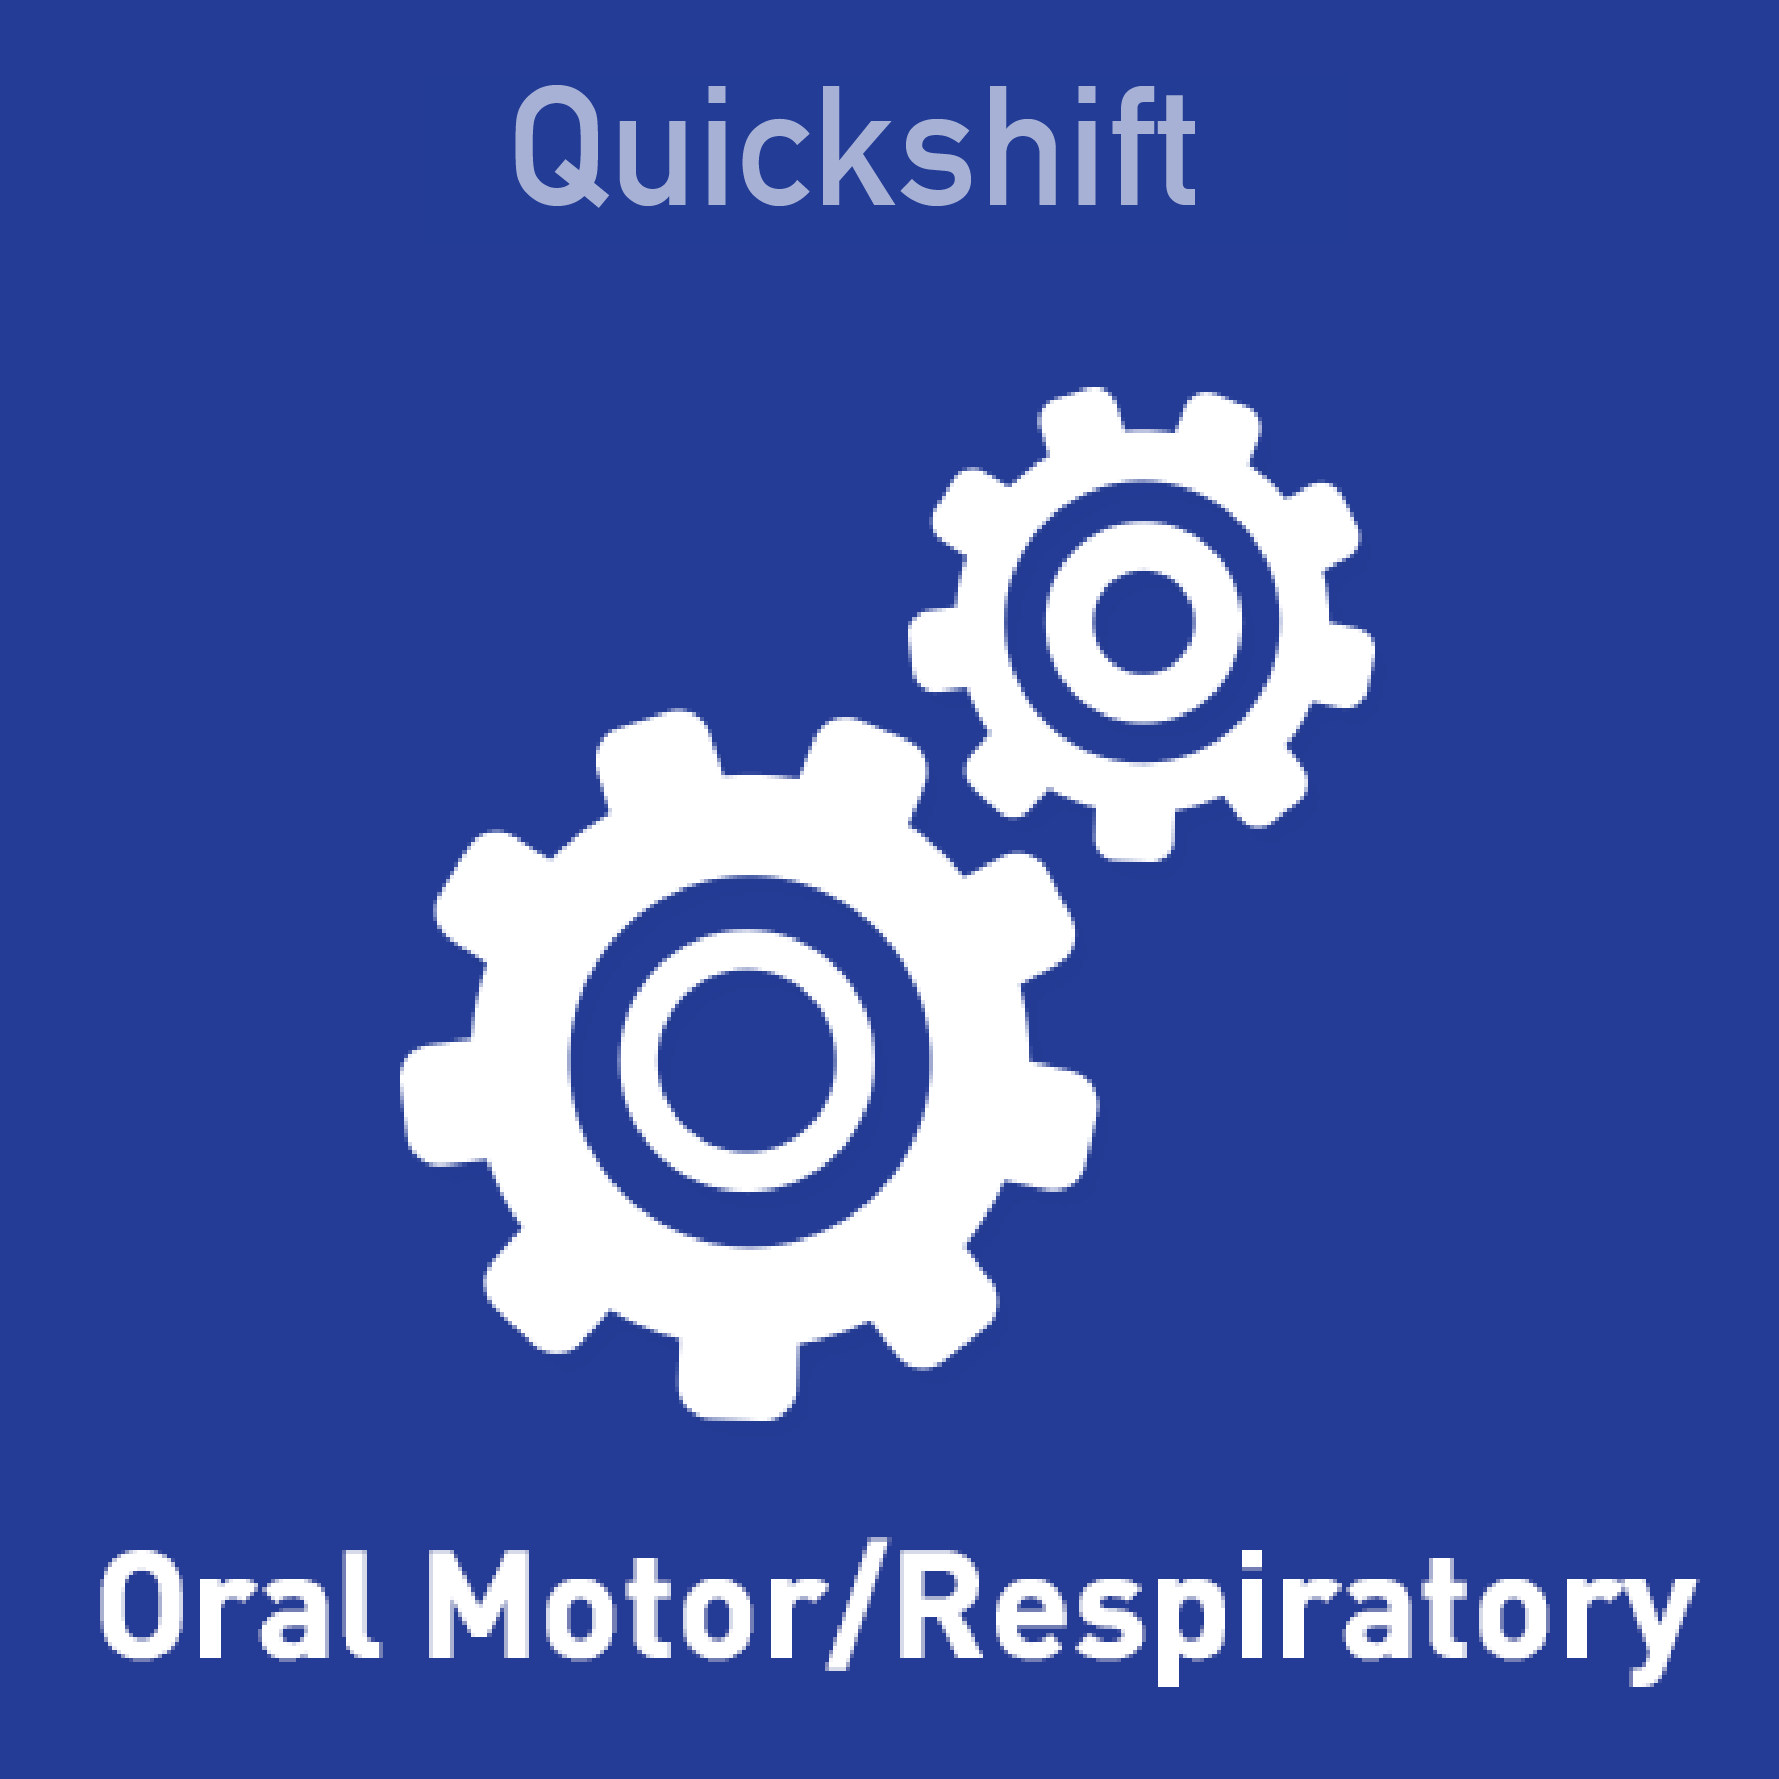 Quickshift - Oral Motor/Respiration